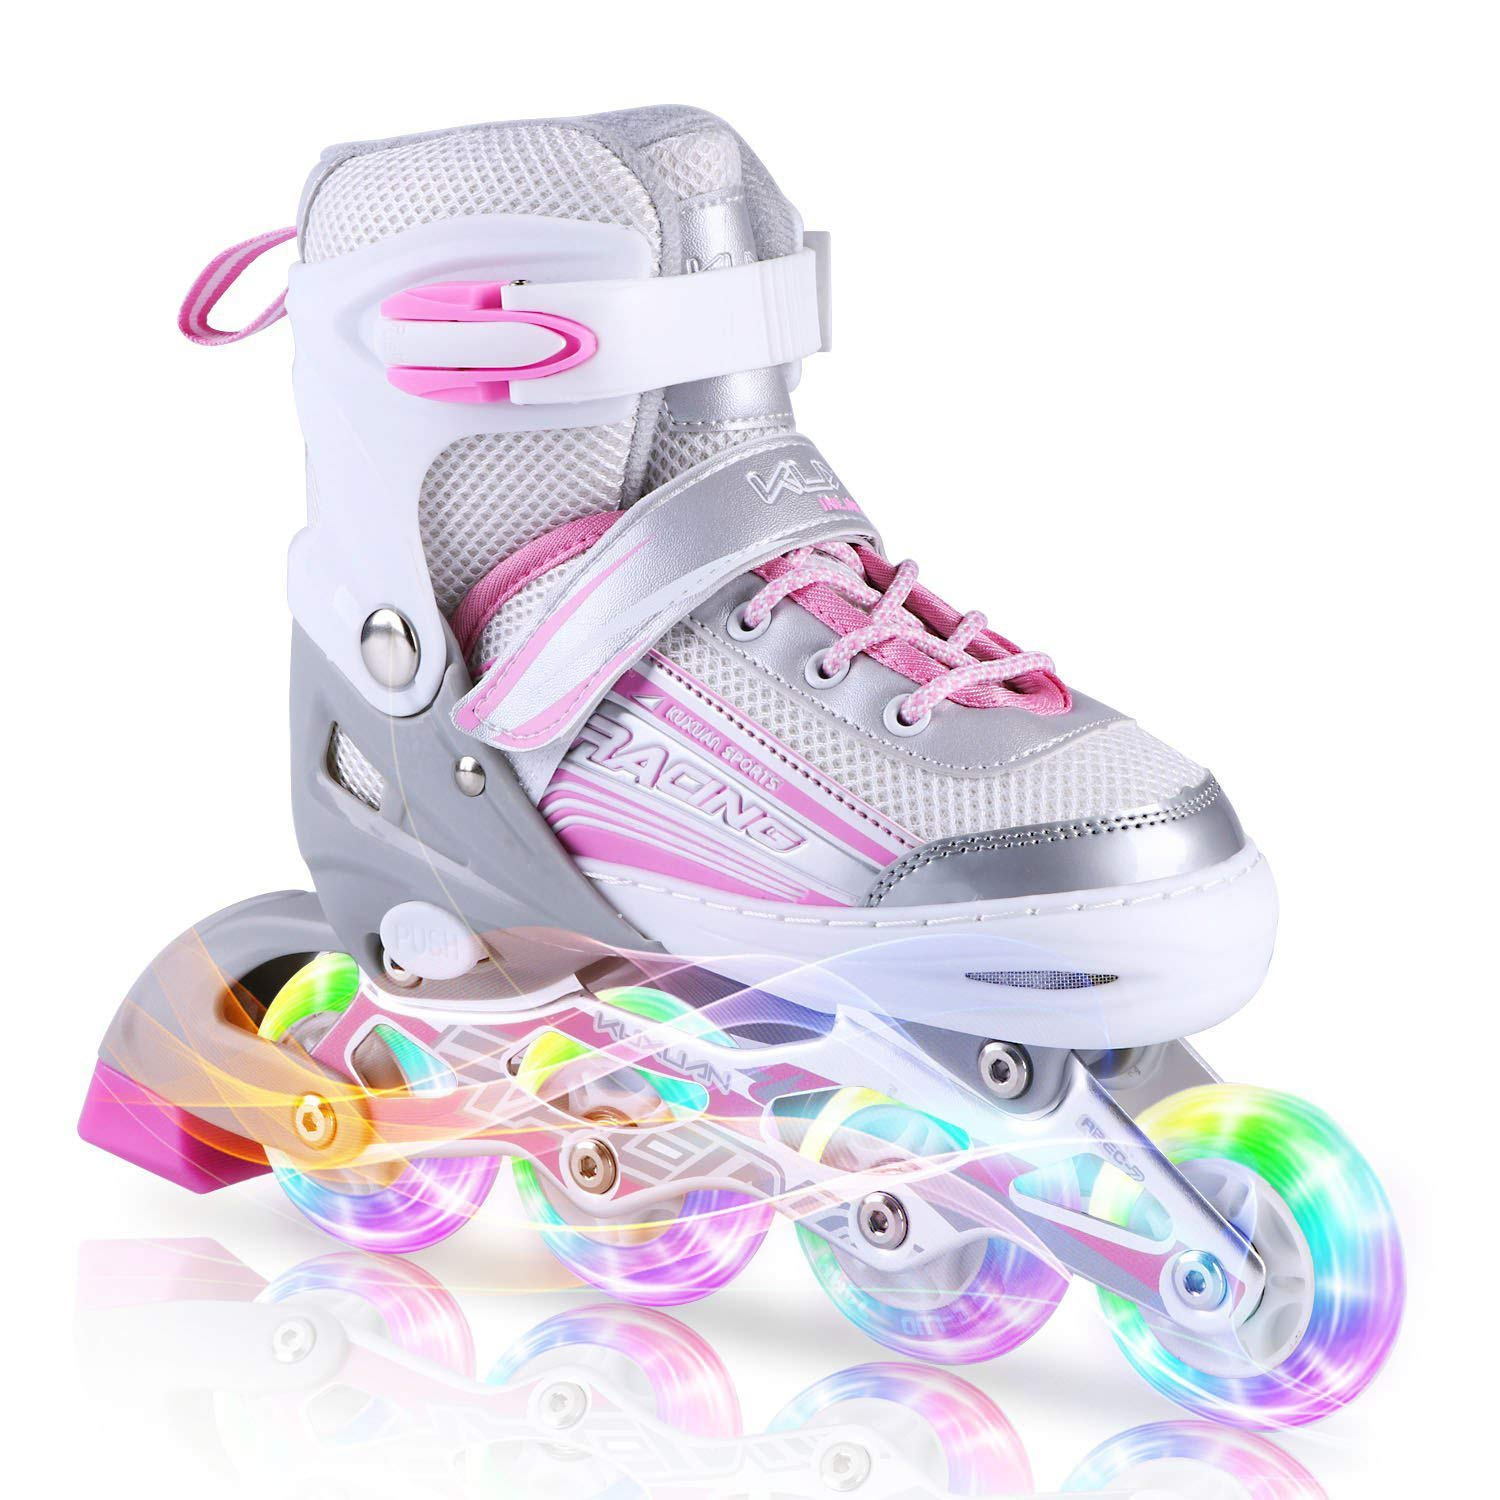 Kuxuan Saya Inline Skates Adjustable for Kids,Girls Rollerblades with All Wheels Light up,Fun Illuminating for Girls and Ladies - Small by Kuxuan (Image #1)